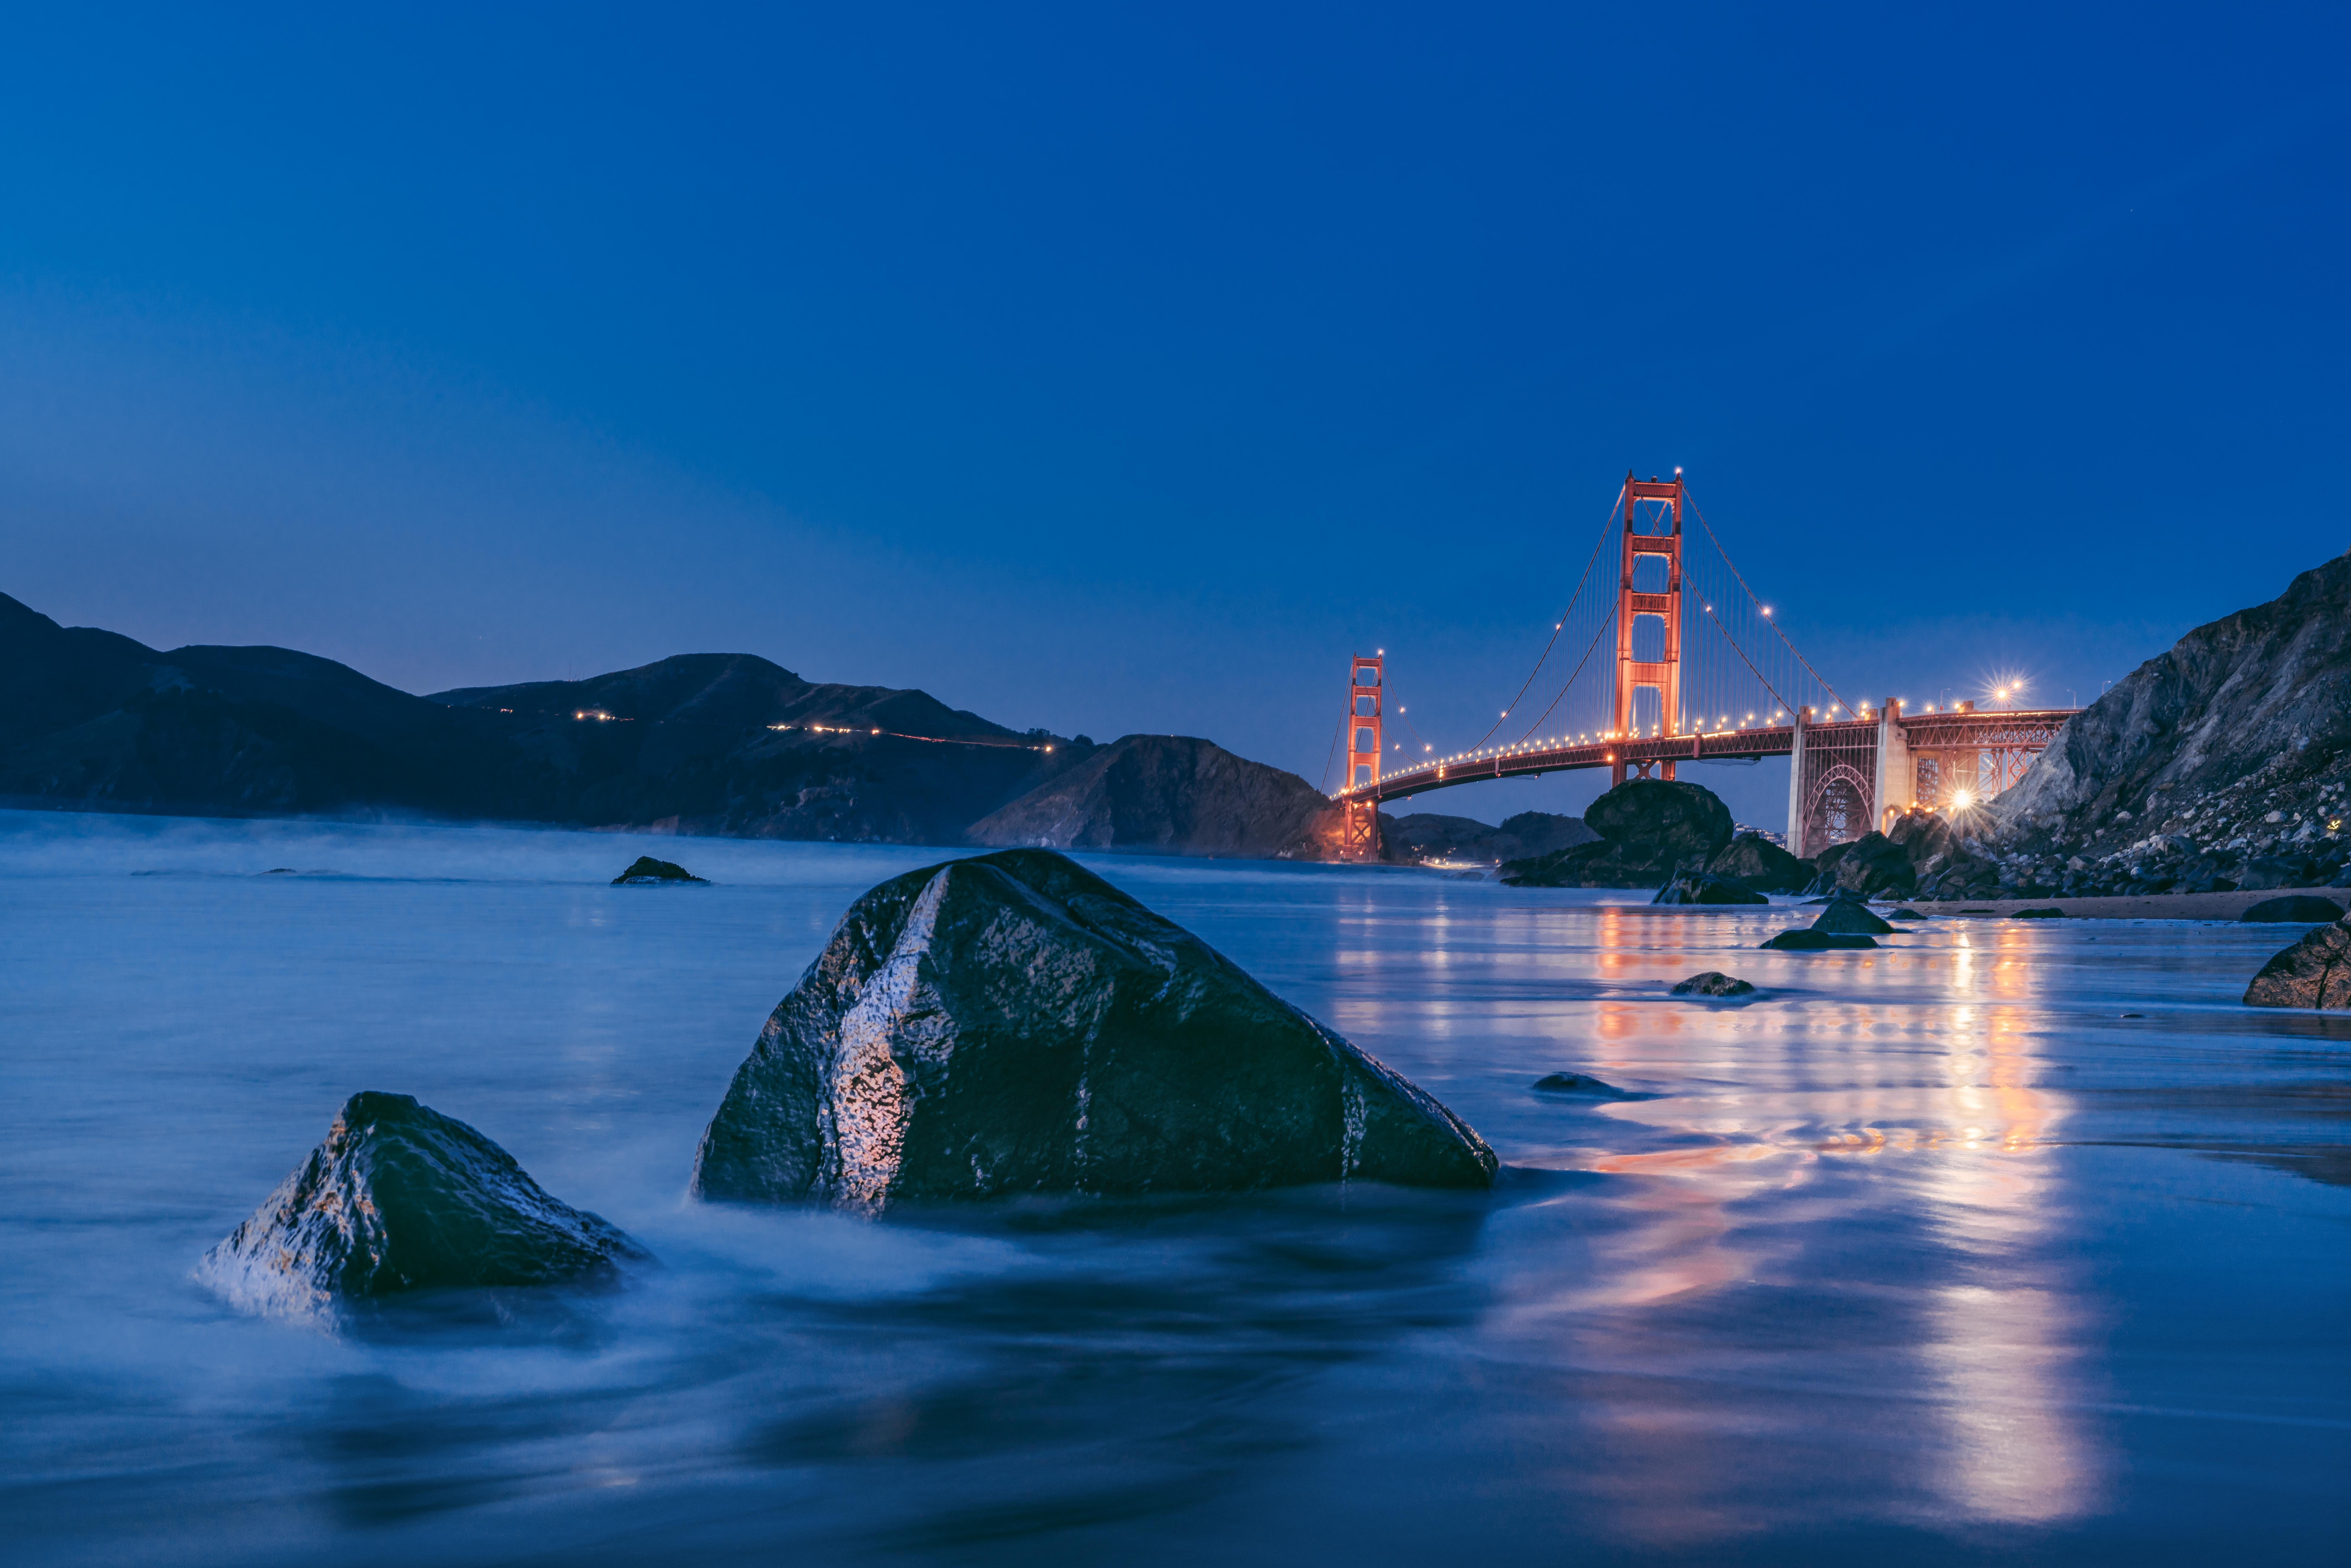 Golden Gate Bridge, California USA during nighttime